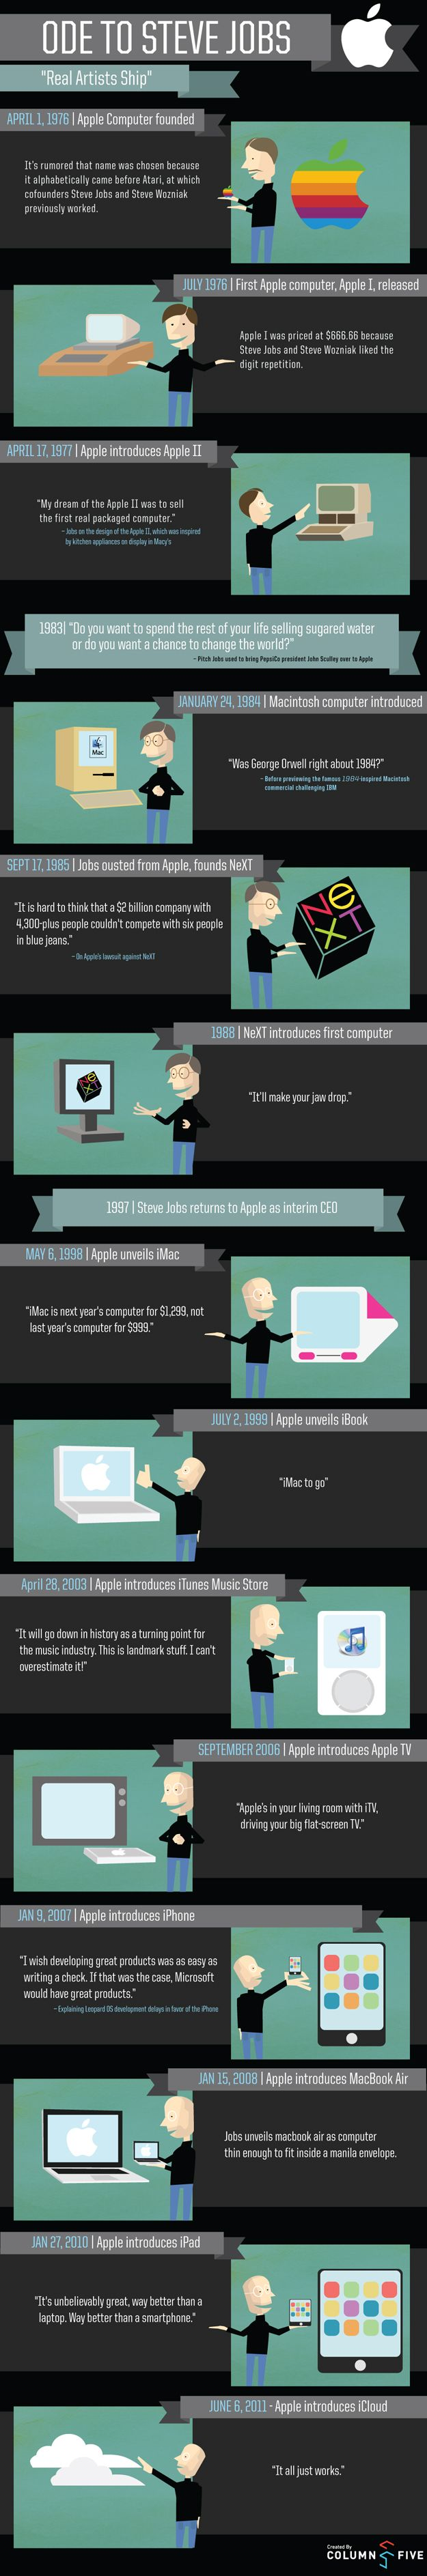 A Tribute to Steve Jobs (Apple Co-founder) #infographics